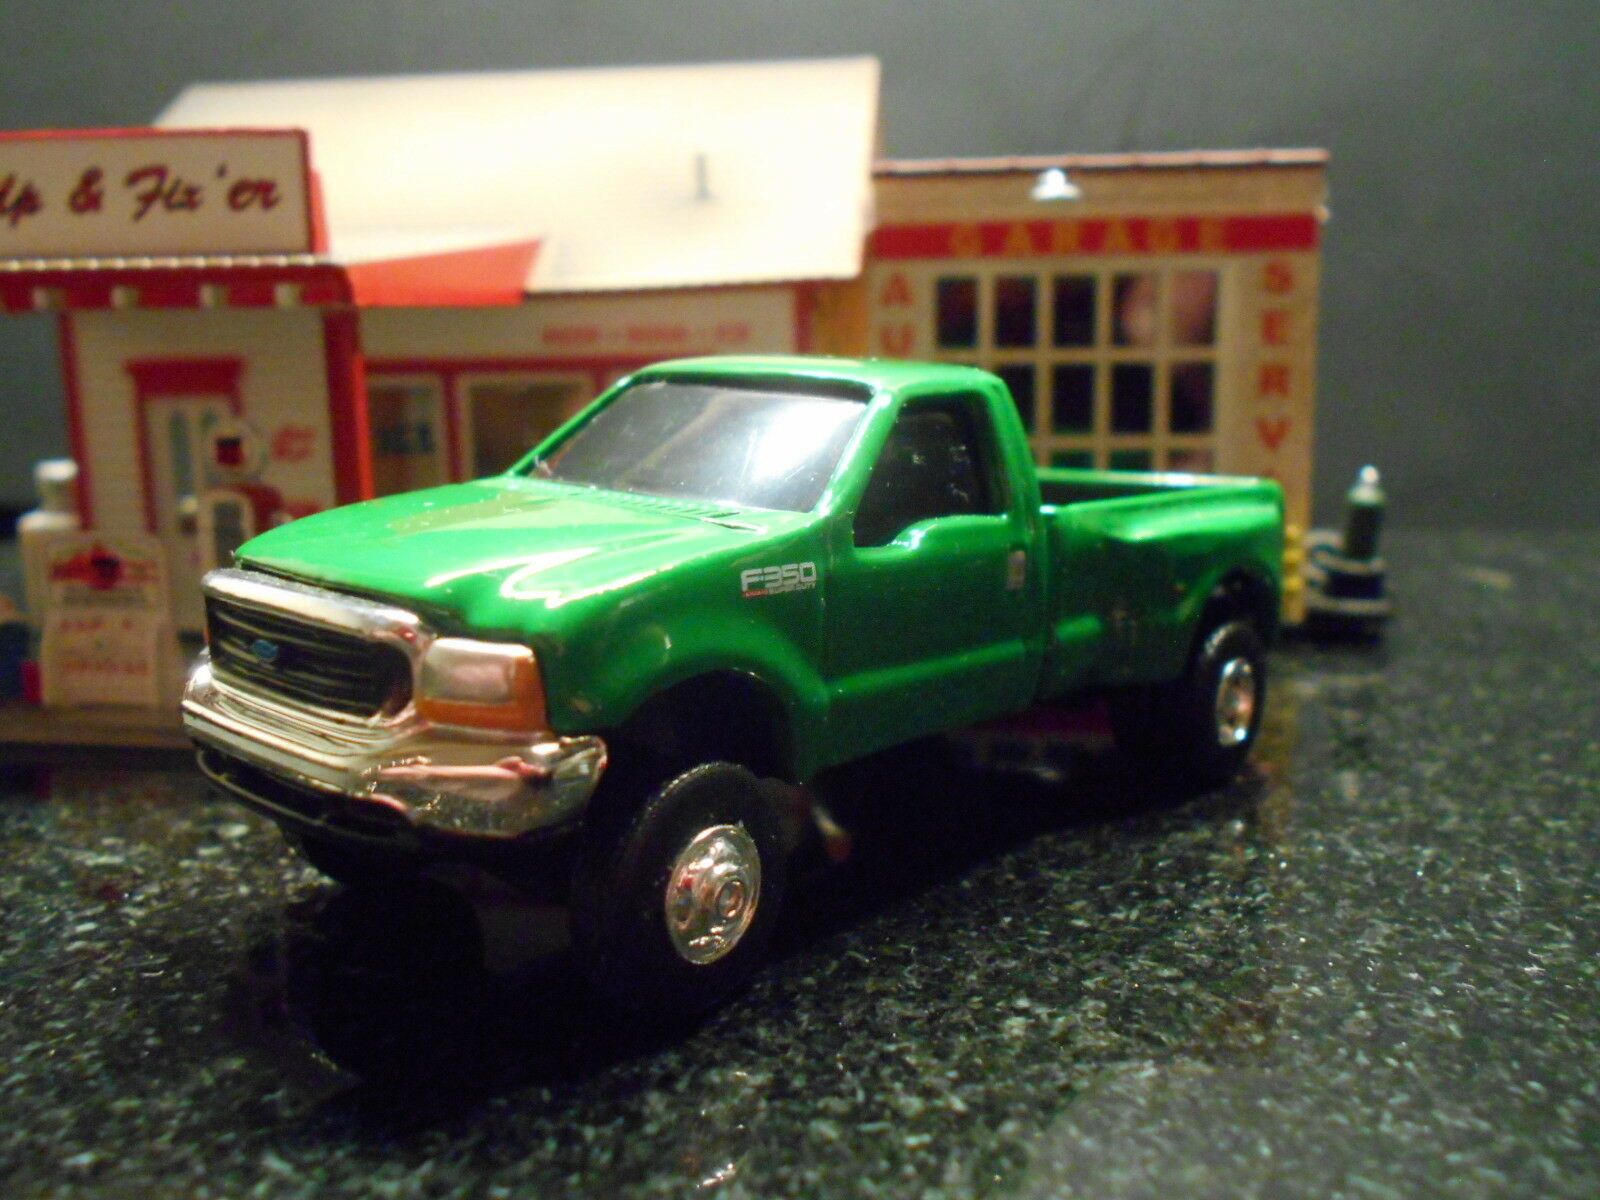 2004 Ford Green F350 Dually Pickup 1/64 Scale Limited Edition See Photos Below